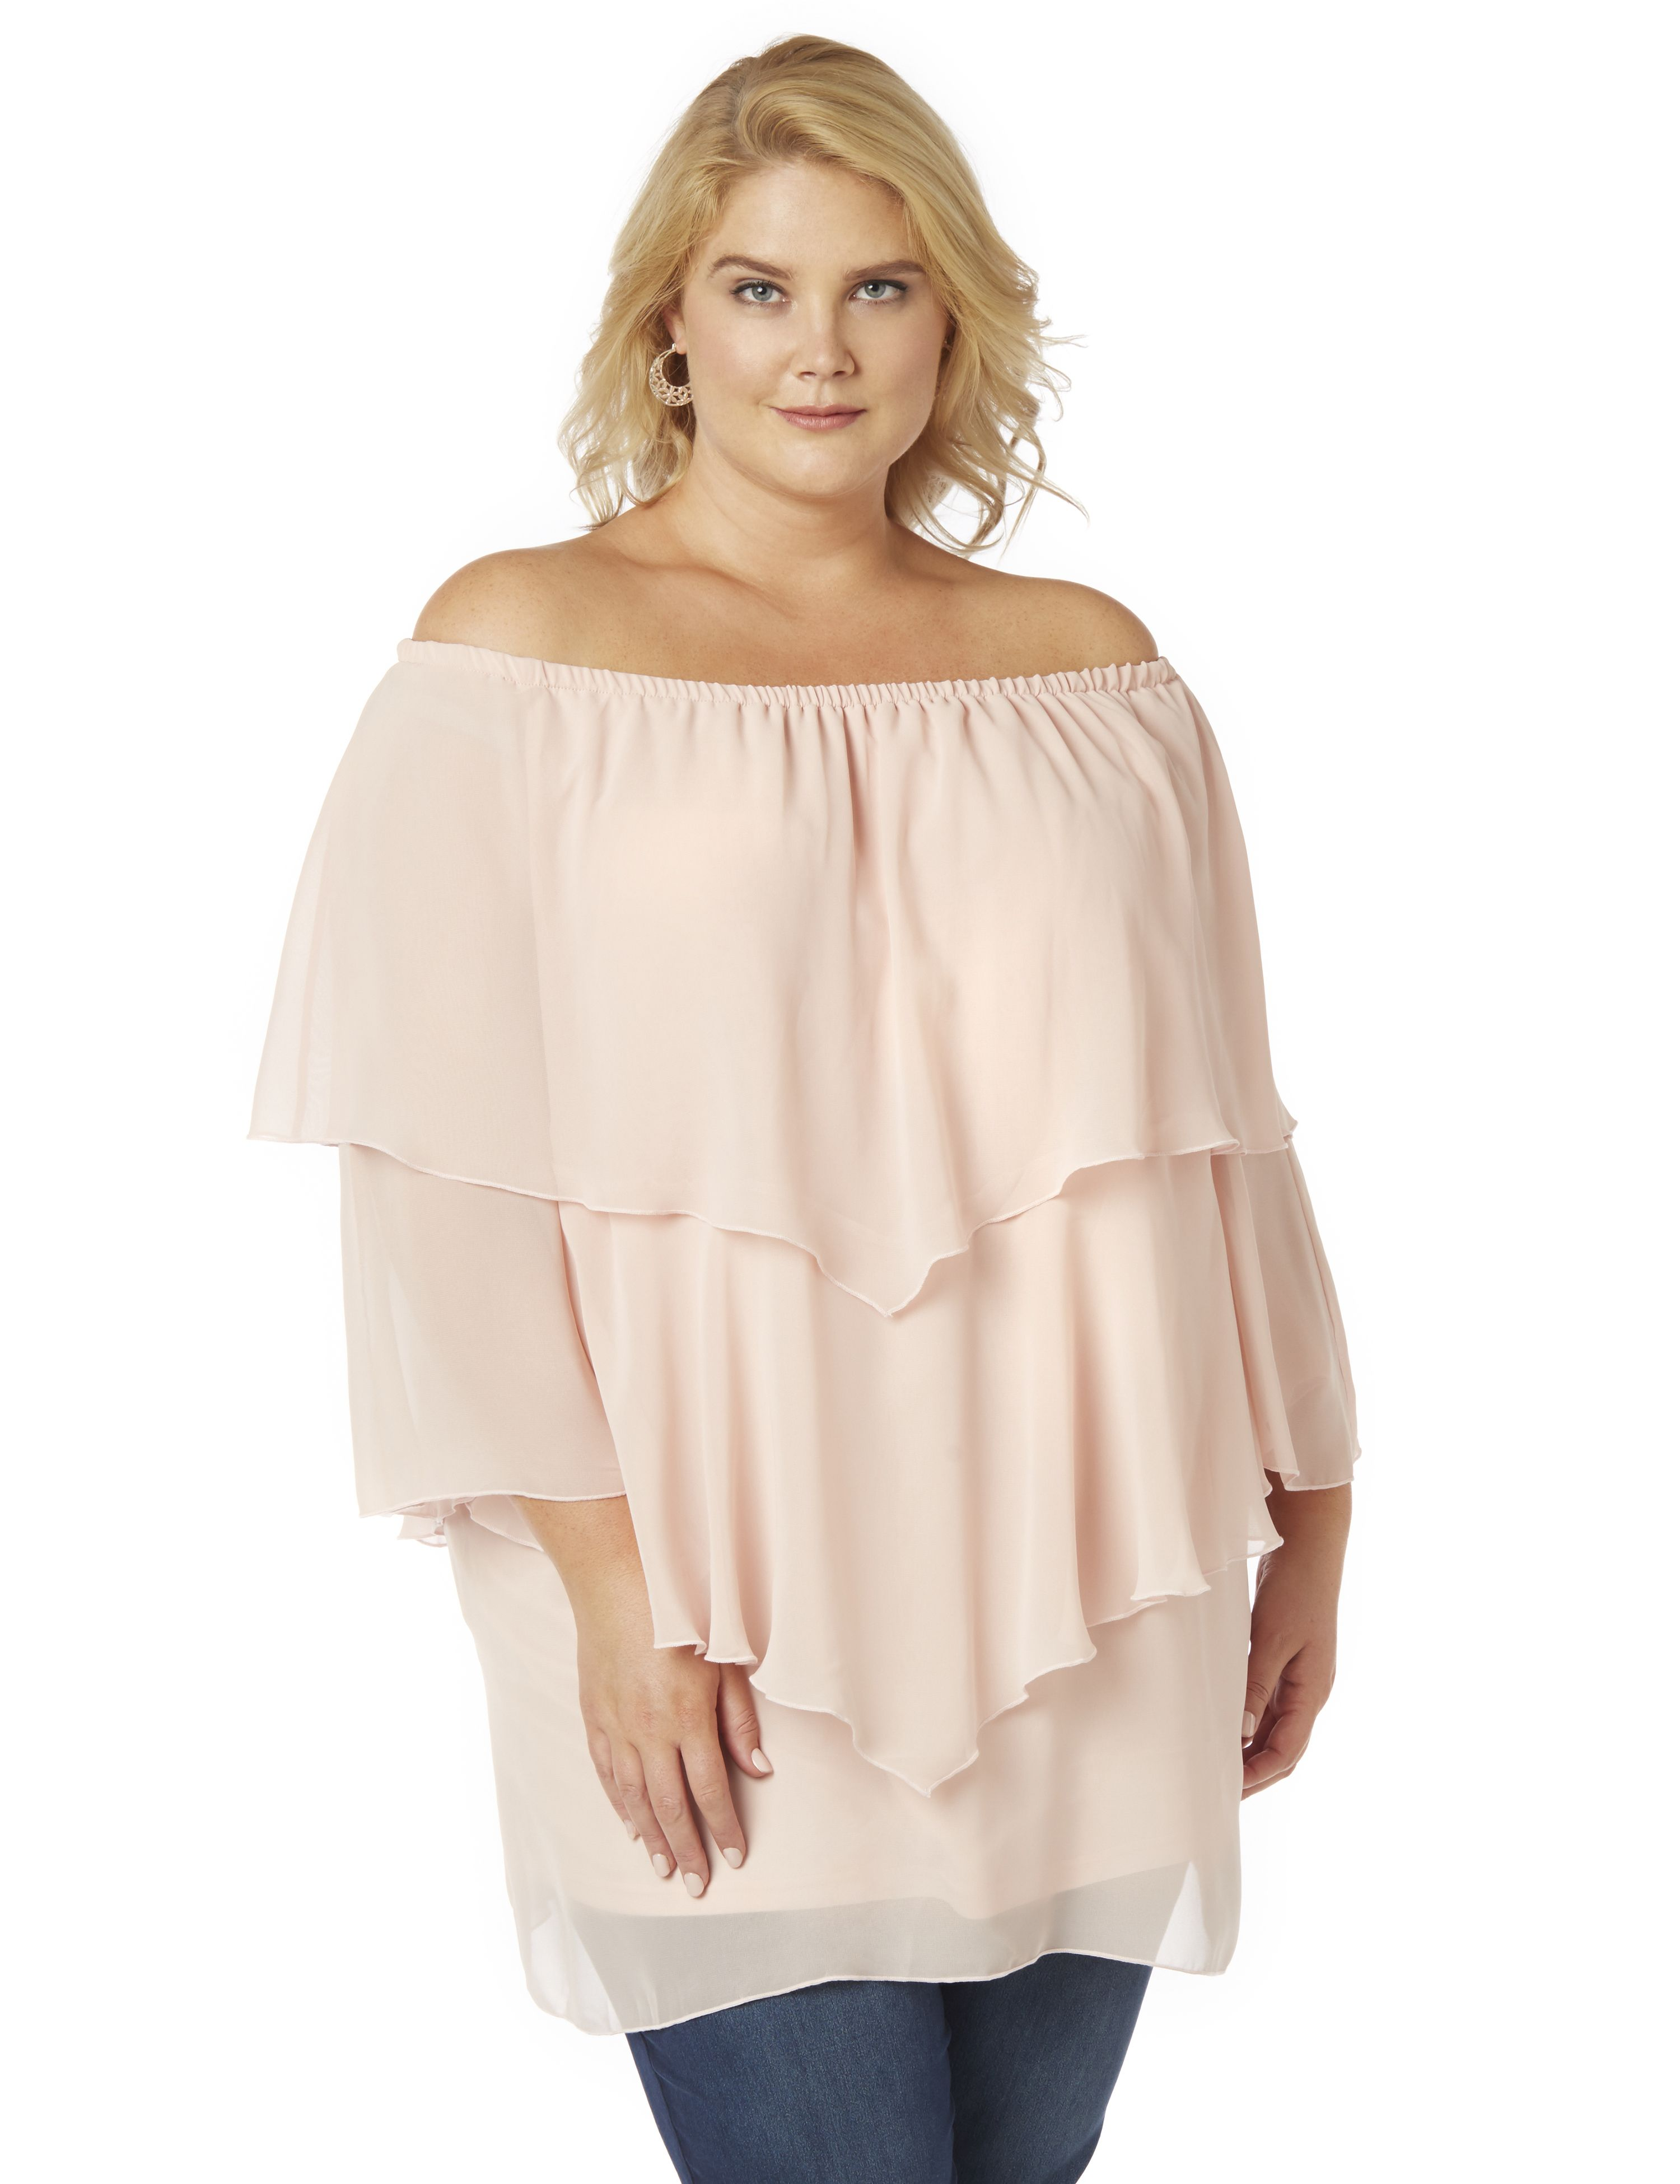 Pastel Love Spell Top Tiered Chiffon Top MP-300089789